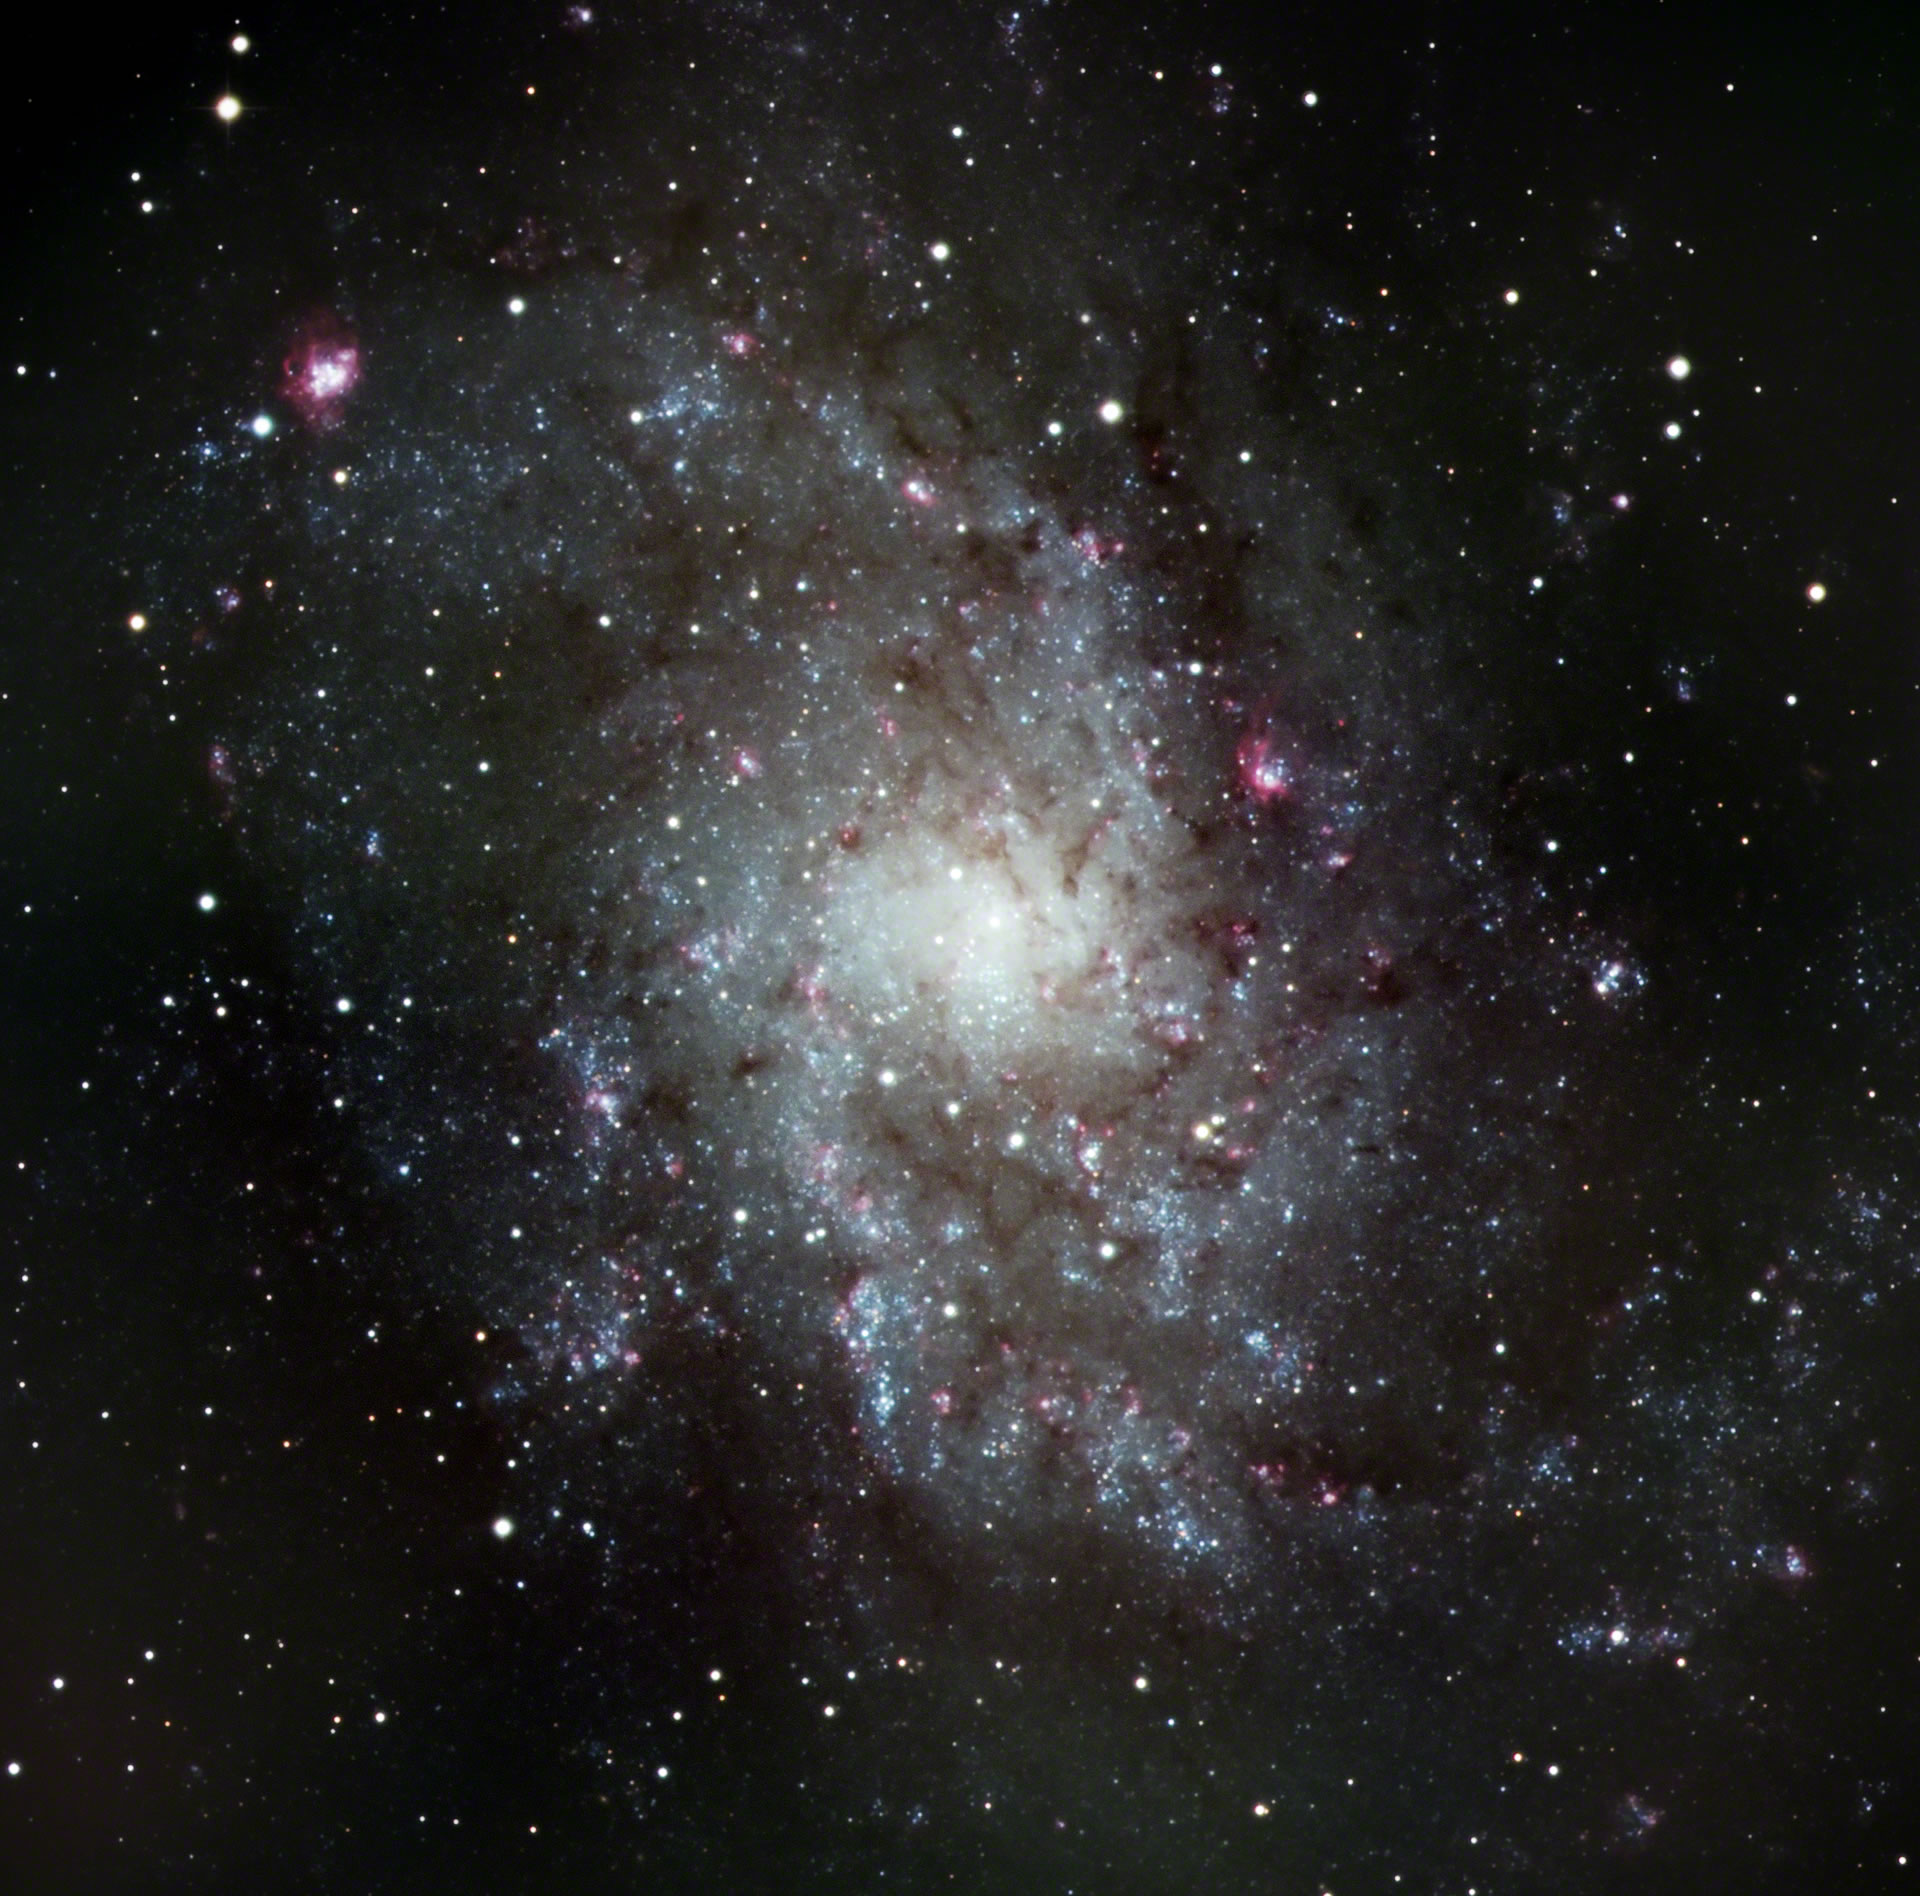 M33; Triangulum Galaxy or Pinwheel Galaxy